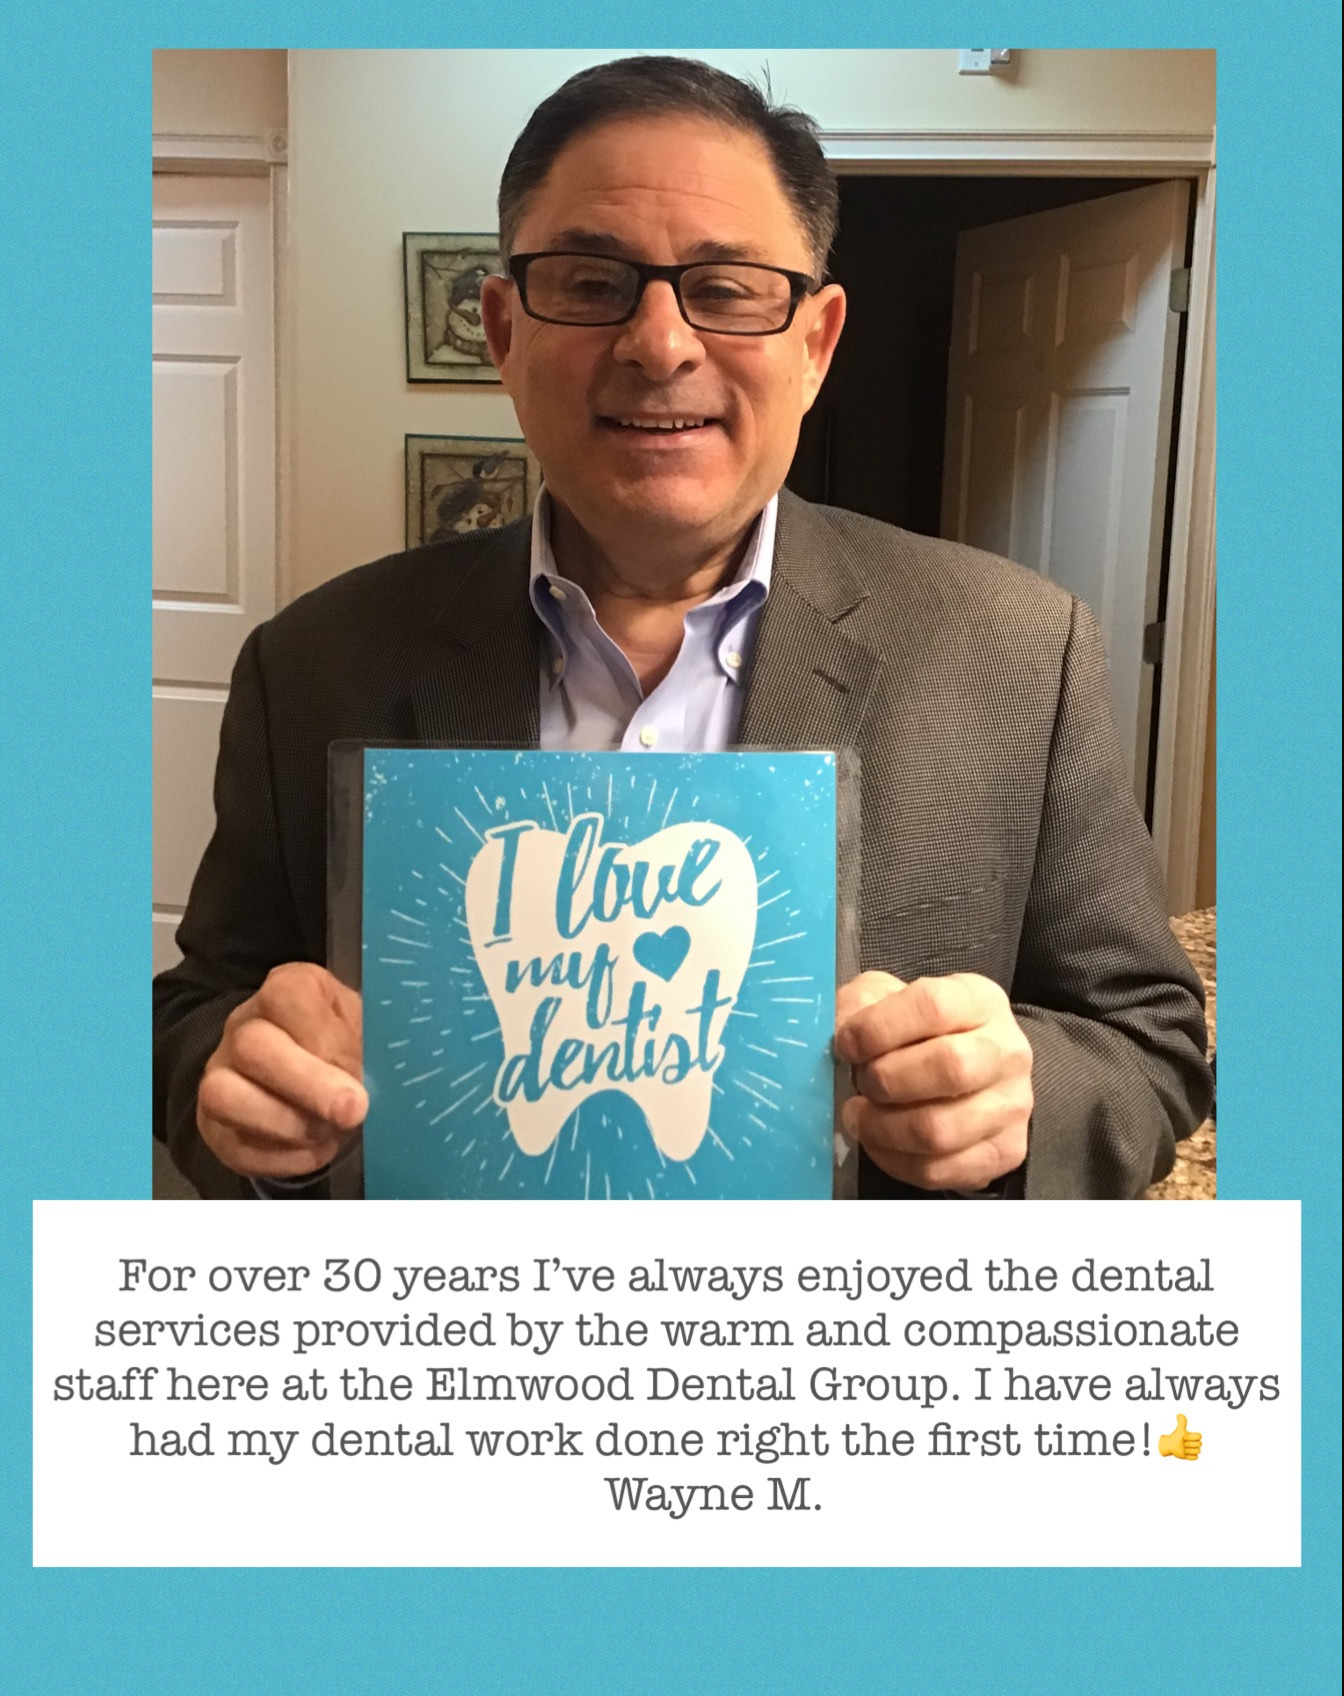 Patient Testimonial for The Elmwood Dental Group LLC